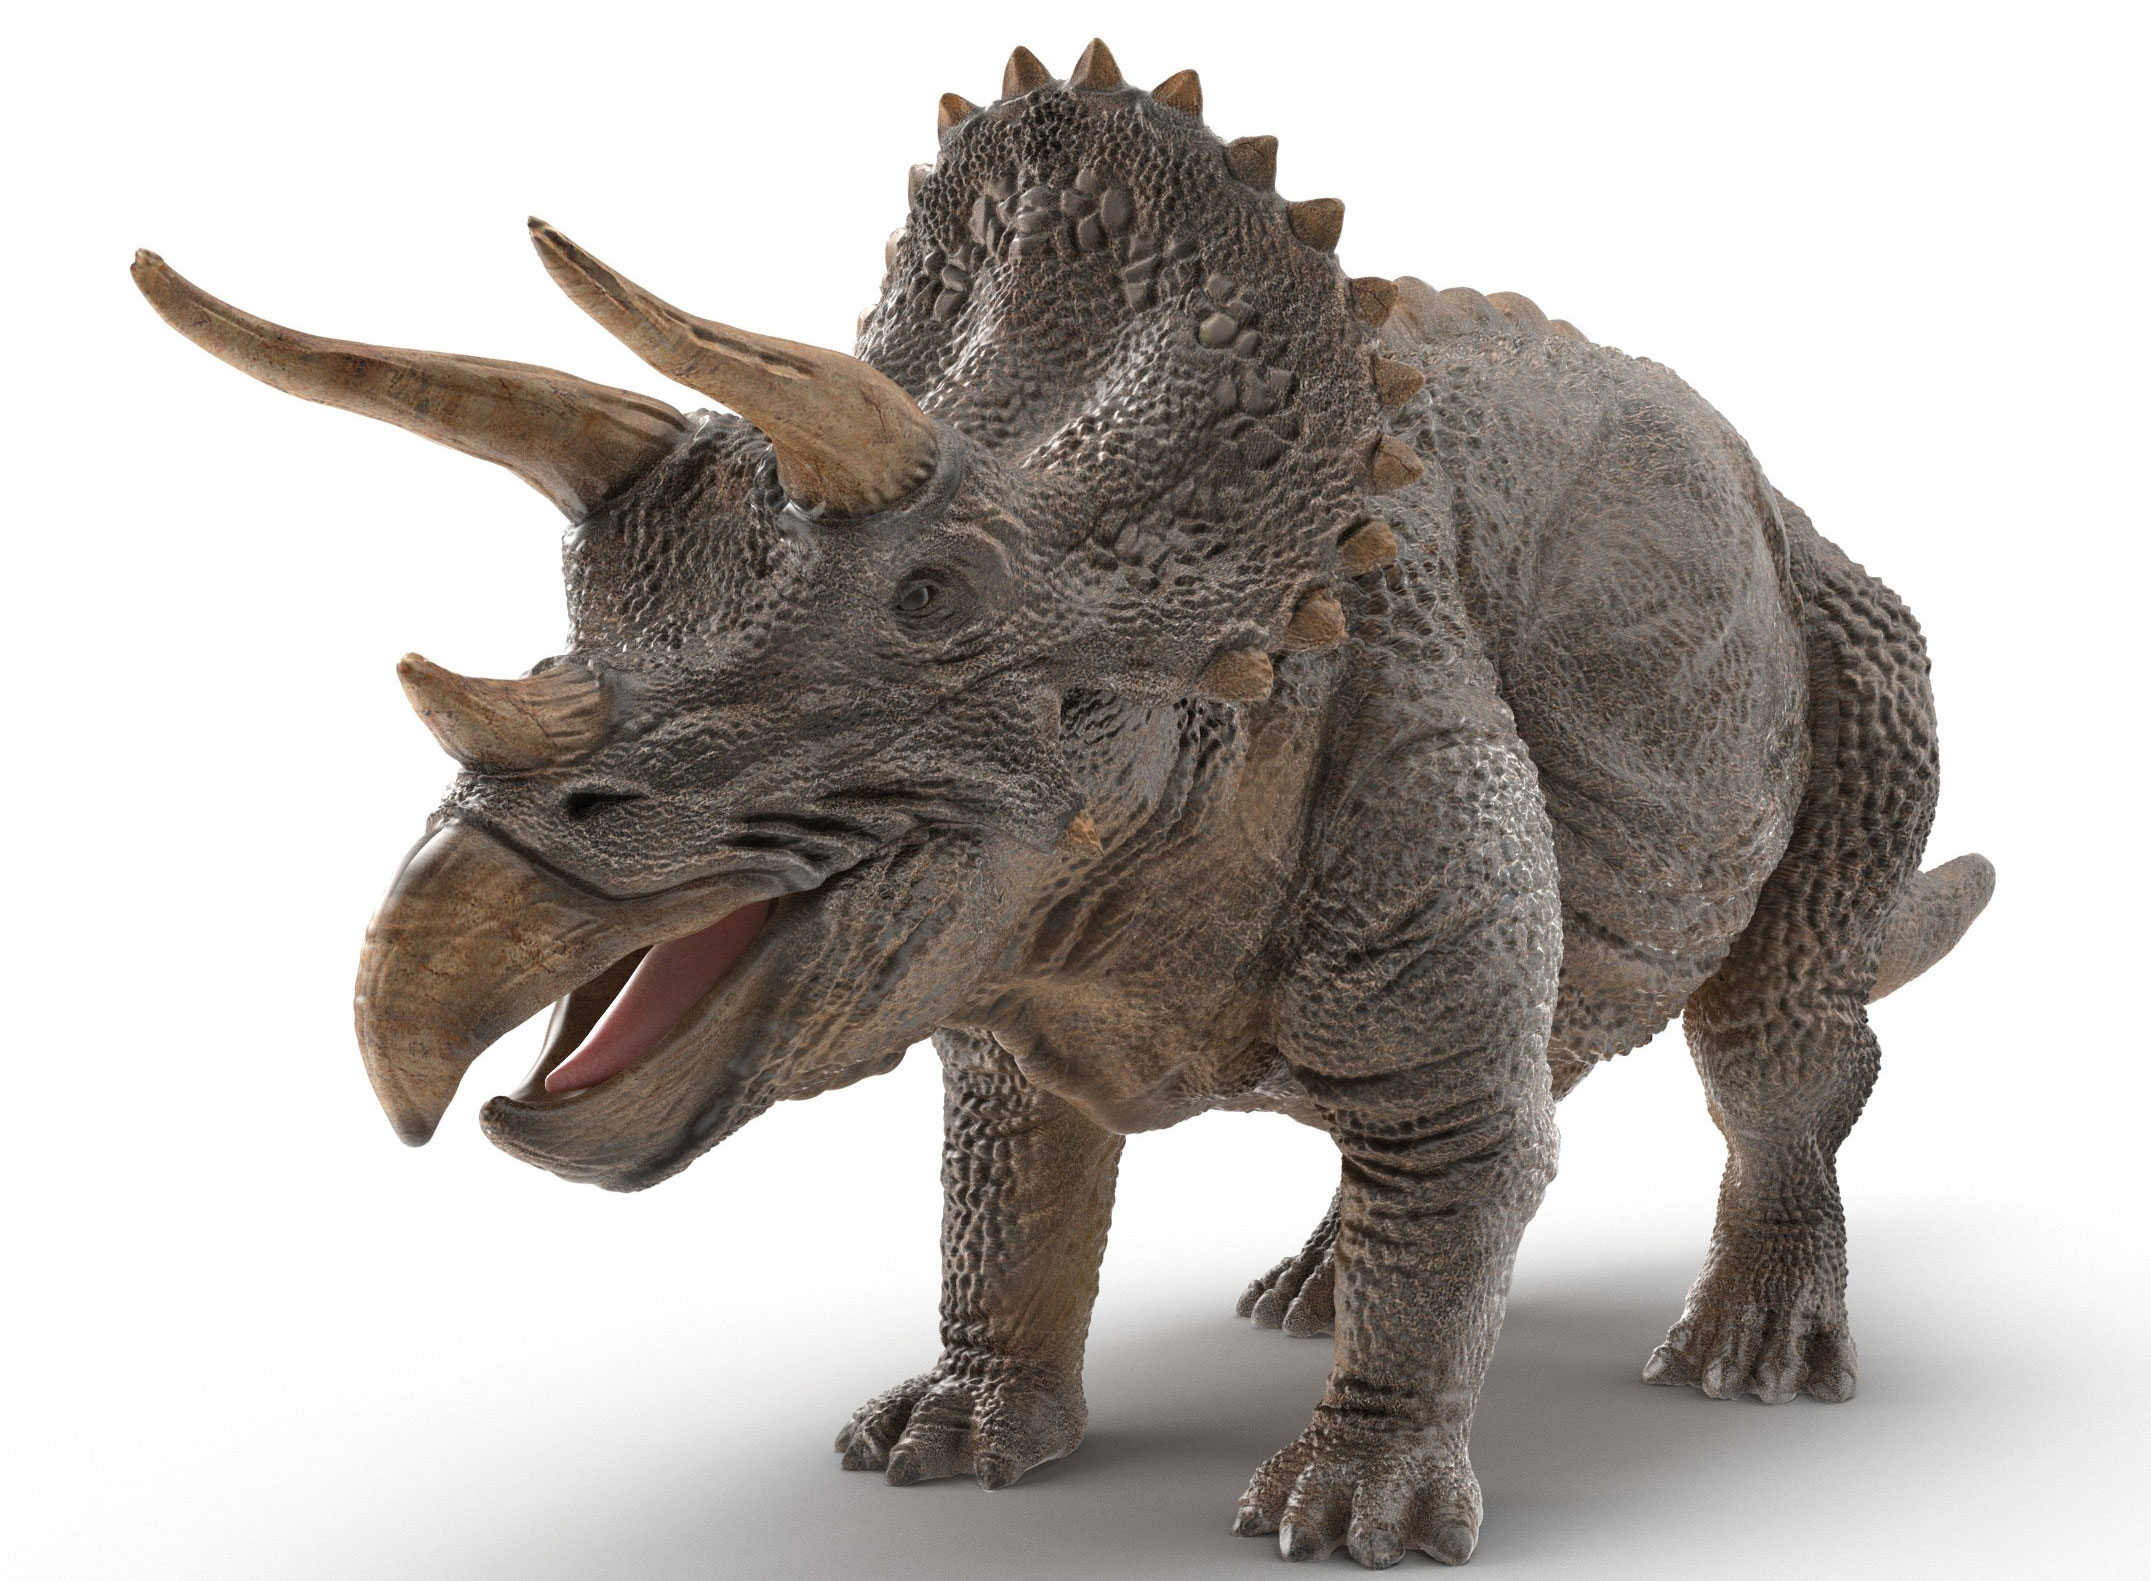 Triceratops 3D model by RaveeCG